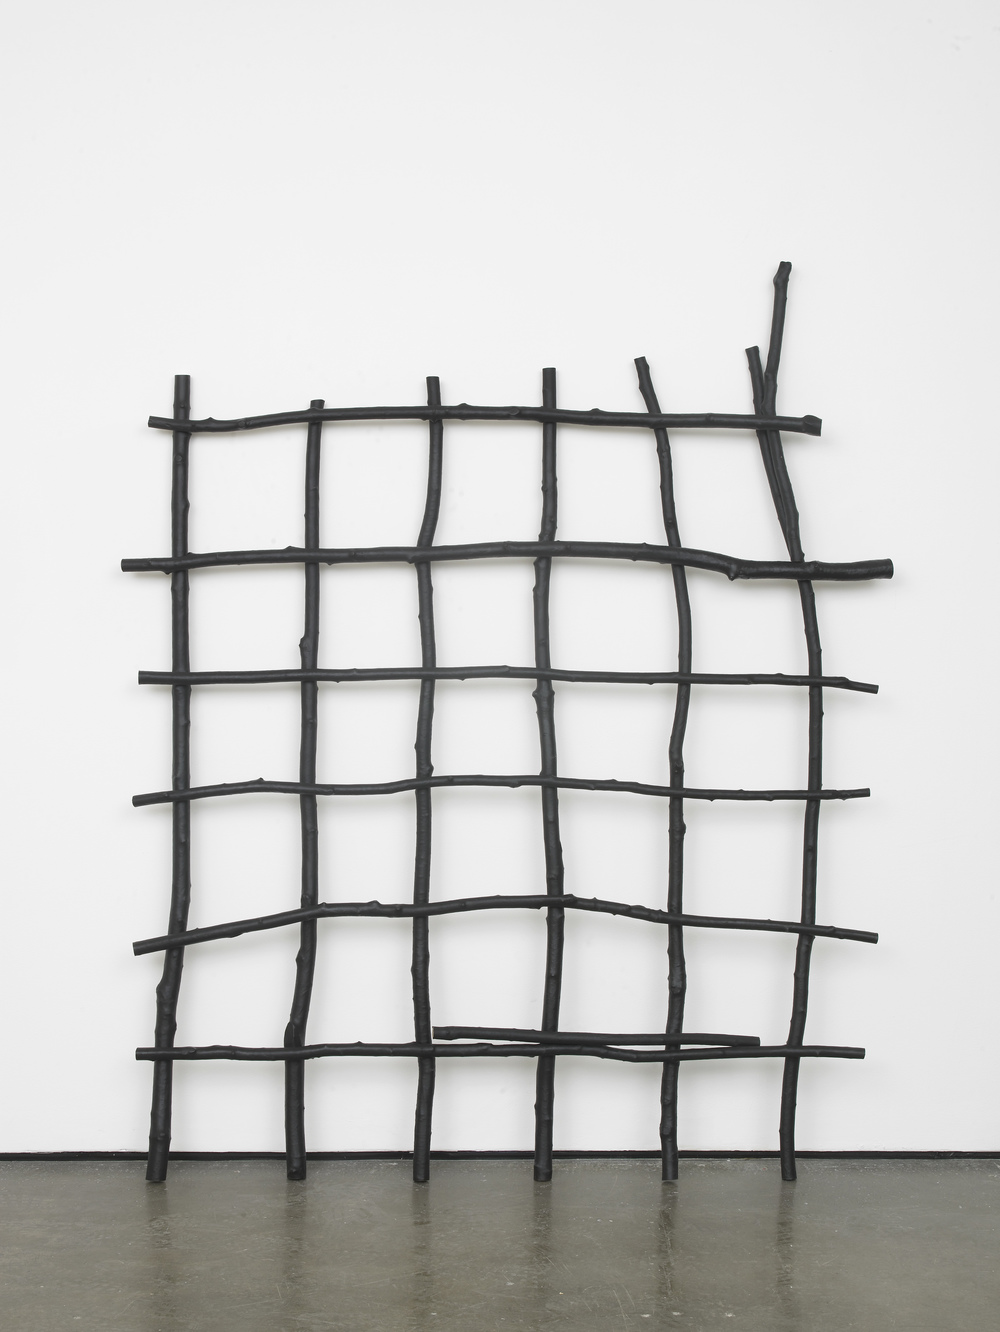 Kunststöcke 2016 PE, wood, metal 195 x 165 x 12 cm / 76.7 x 64.9 x 4.7 in